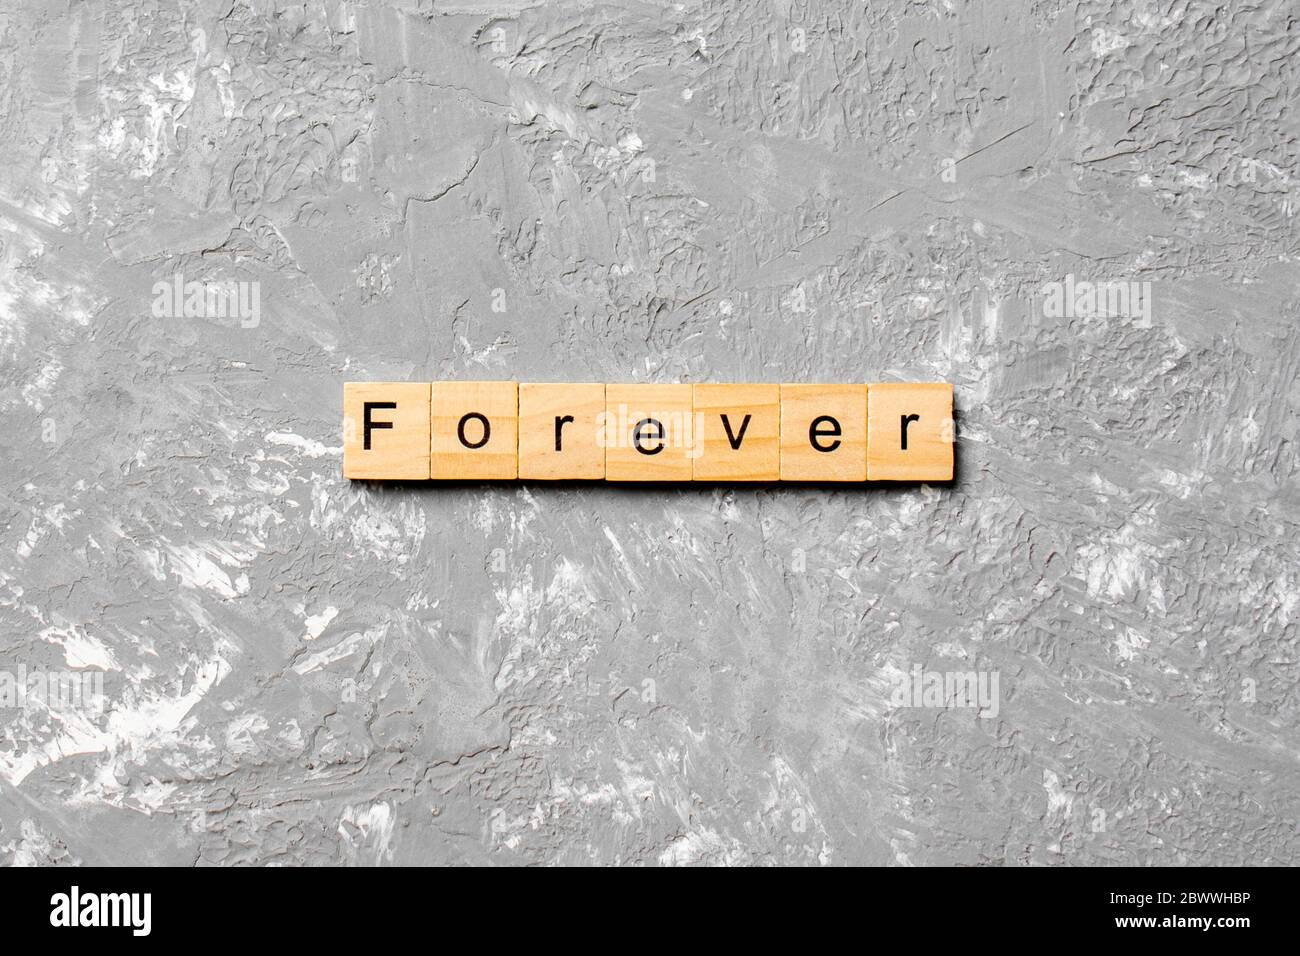 forever word written on wood block. forever text on table, concept. Stock Photo